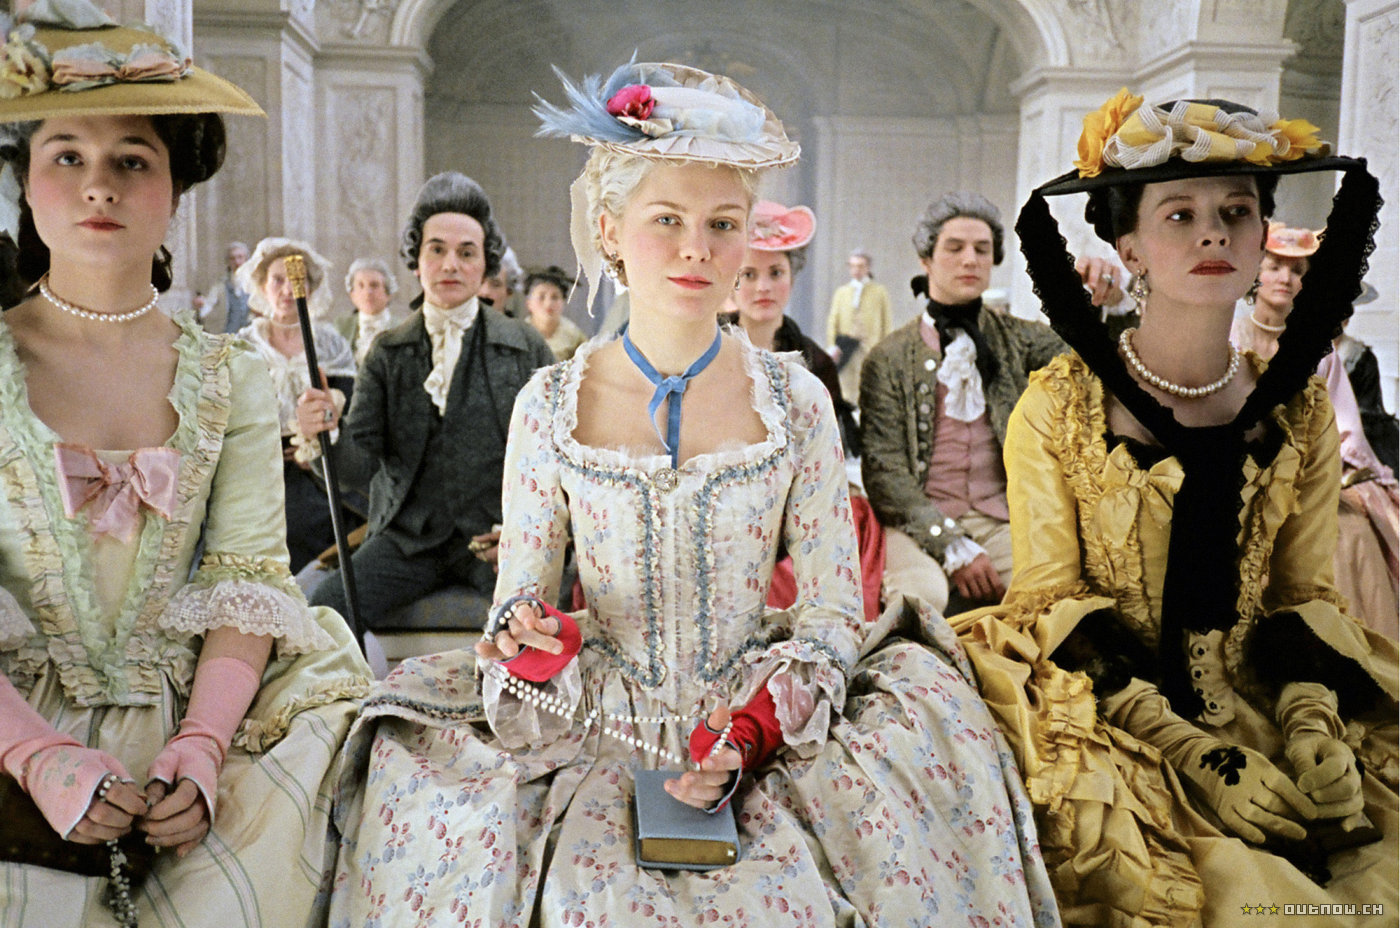 http://heycrazy.files.wordpress.com/2009/08/marie_antoinette_screen1_large.jpg